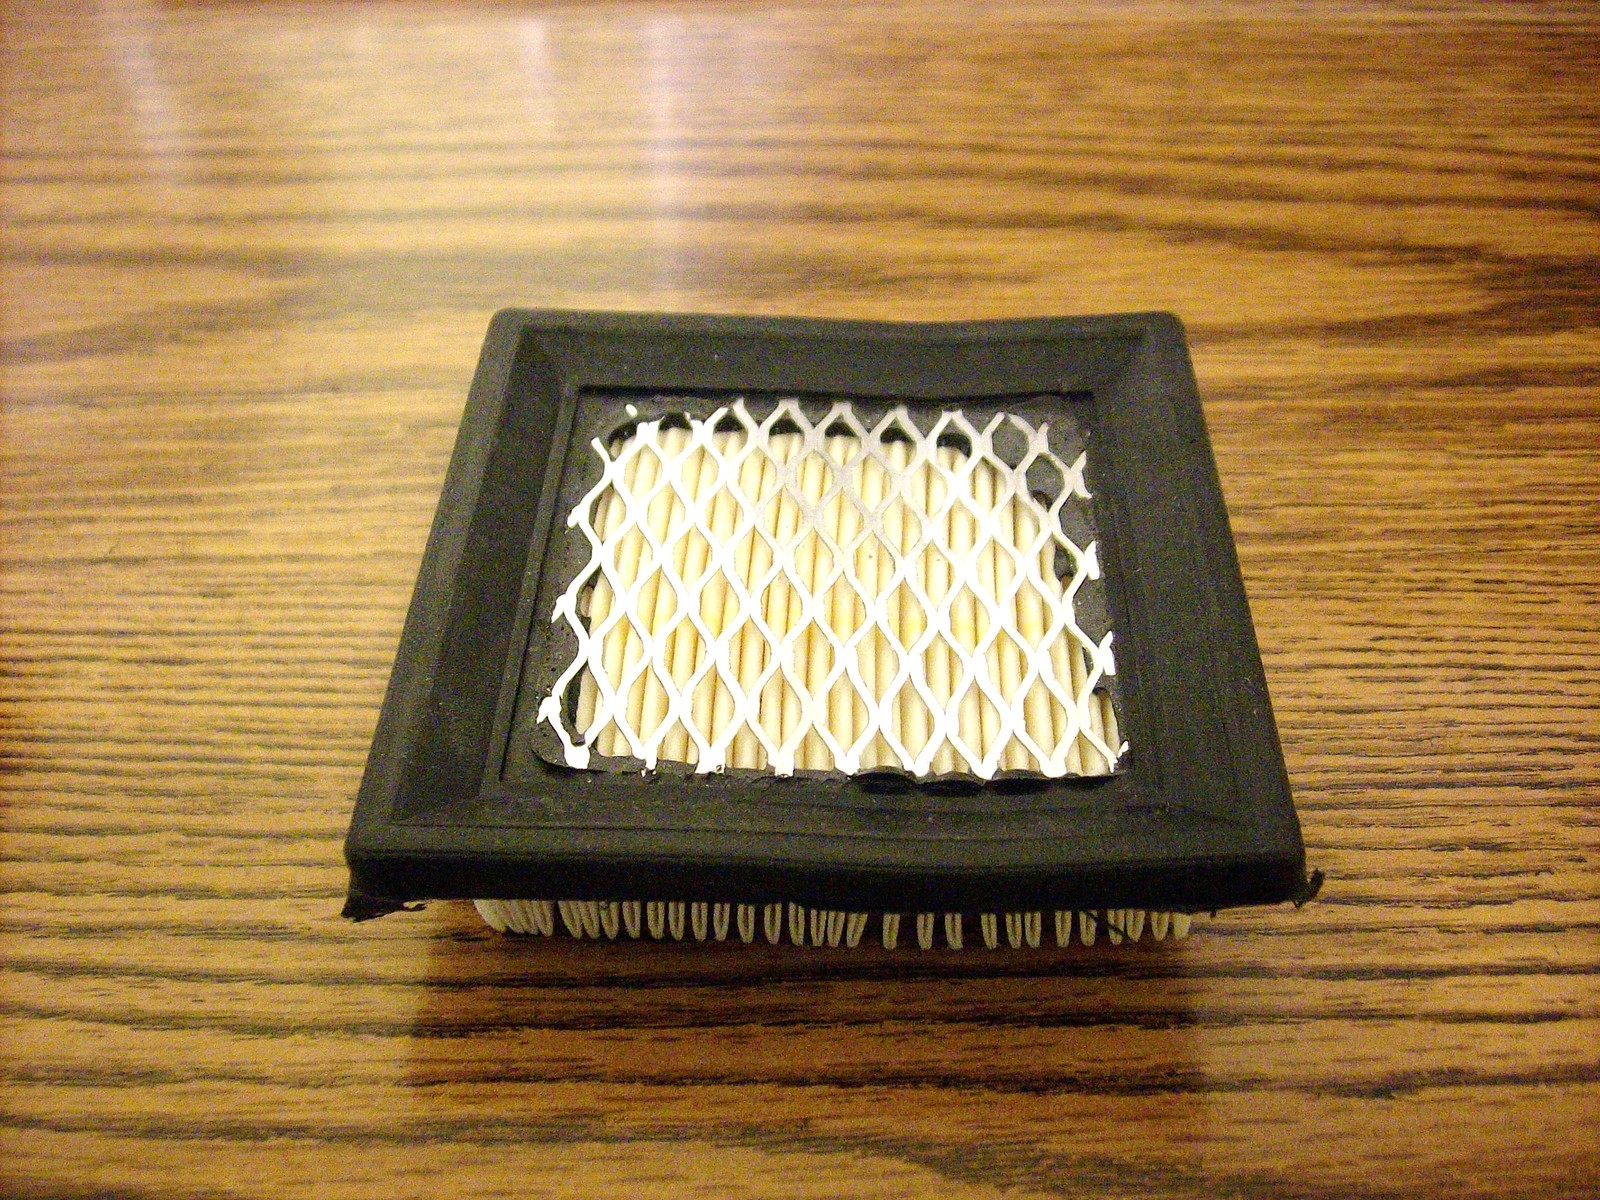 Air filter for Tecumseh TVXL840 and TVS840 engine 450247